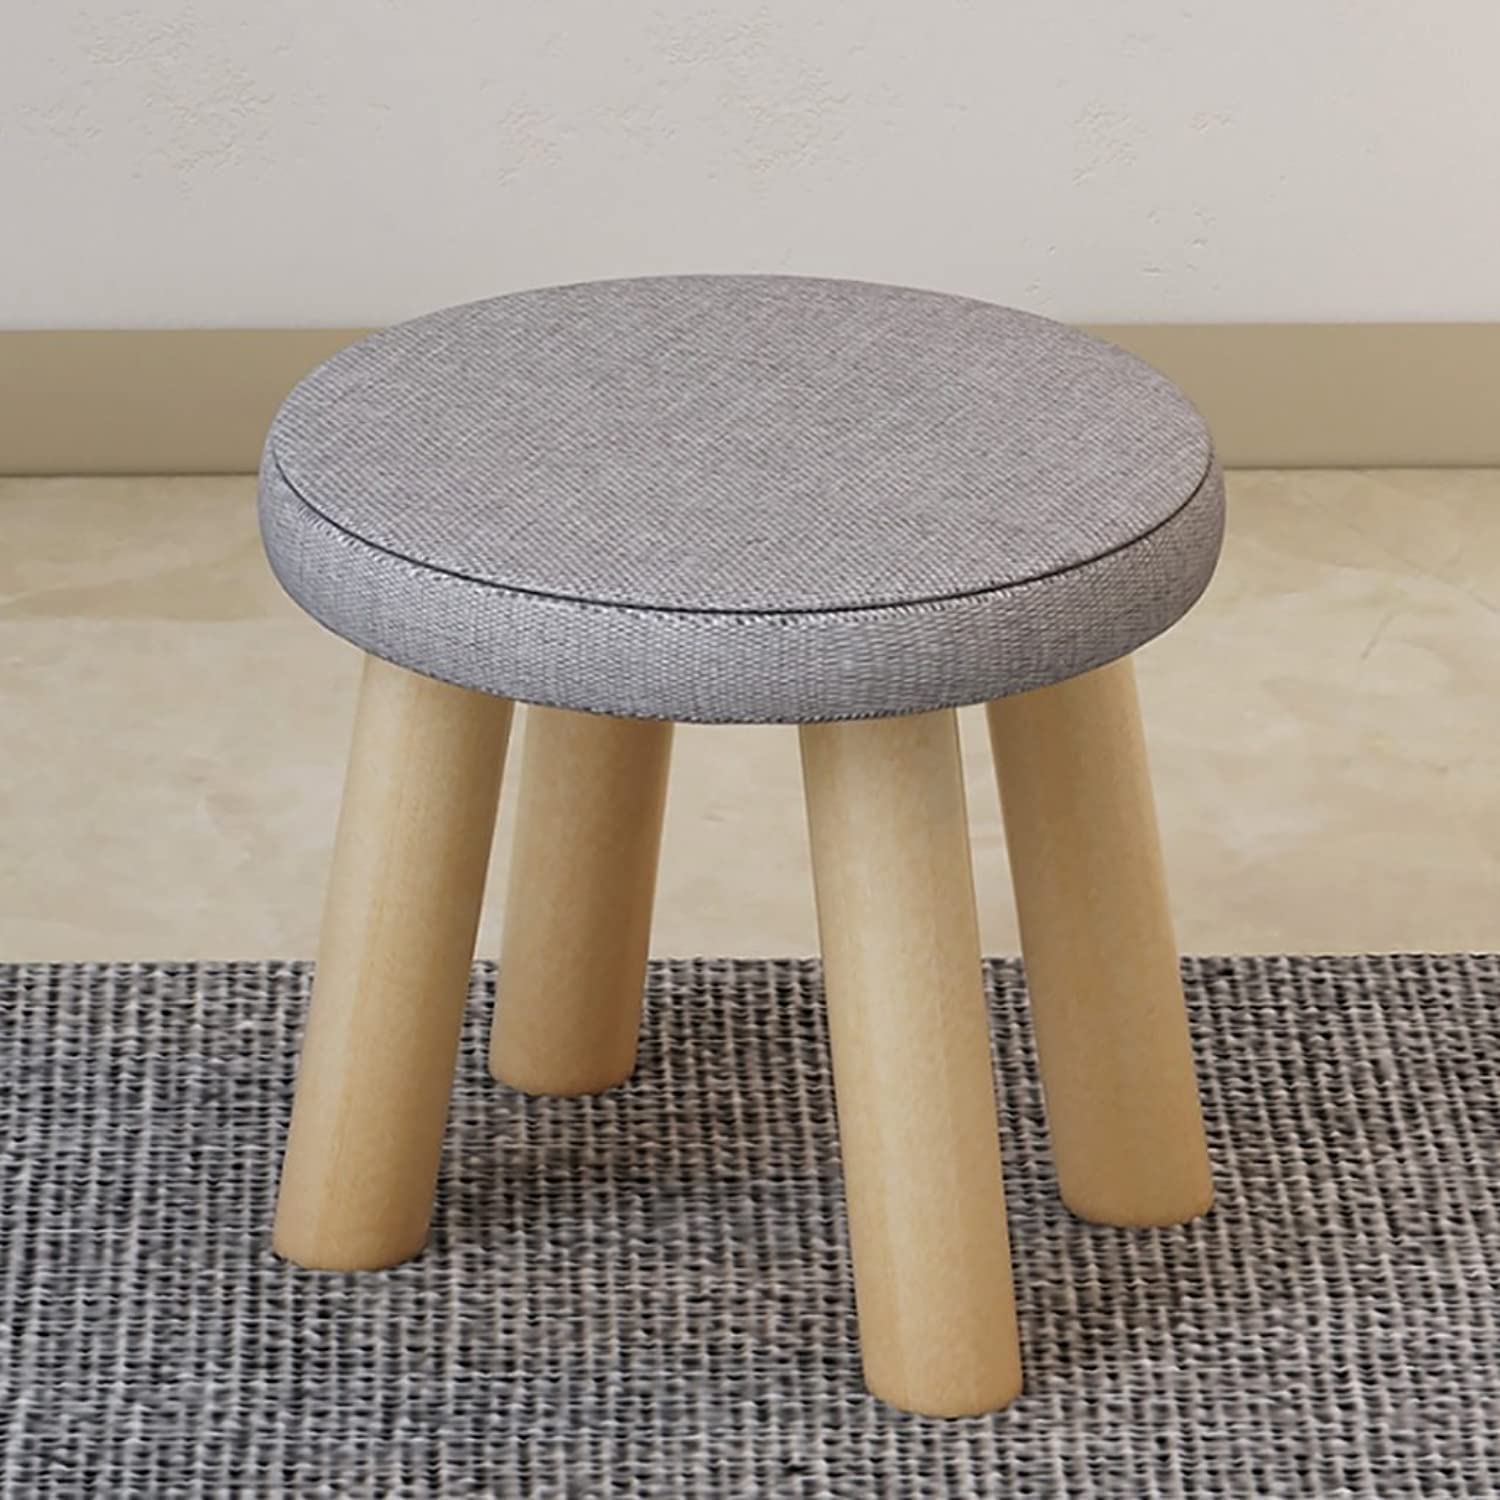 Fashion Wooden Stool, shoes Stool Cloth Sofa Stool Home Stool Courtyard Stool with 4 Legs (color   A, Size   29  26CM)